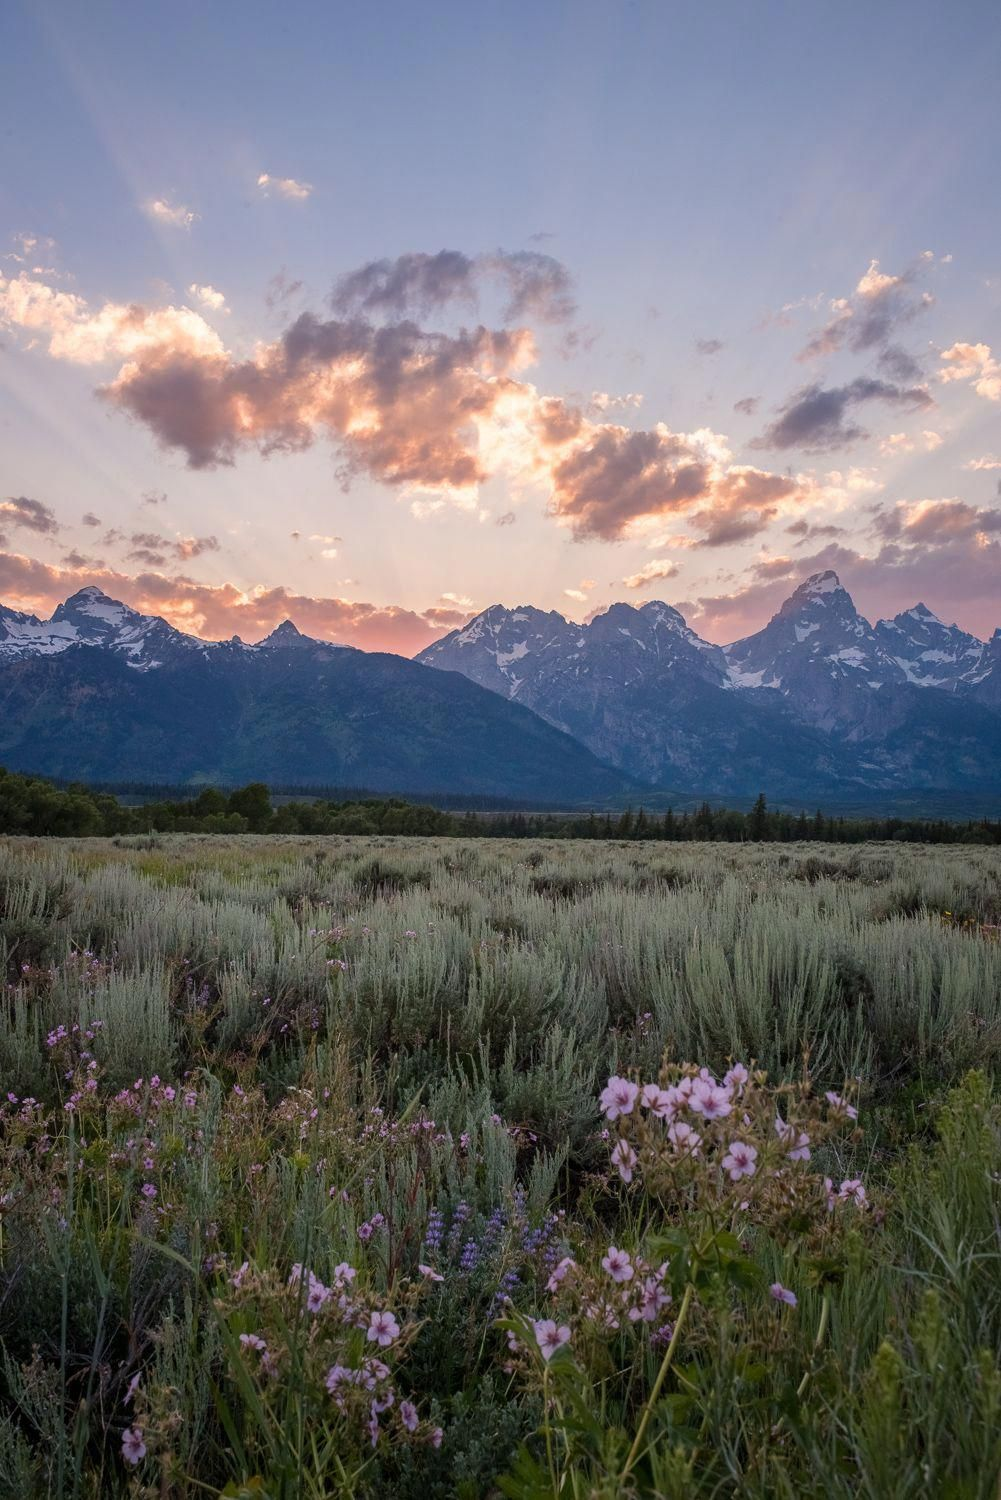 468304061256045614 In 2020 Landscape Photography Nature Nature Photography Landscape Photography